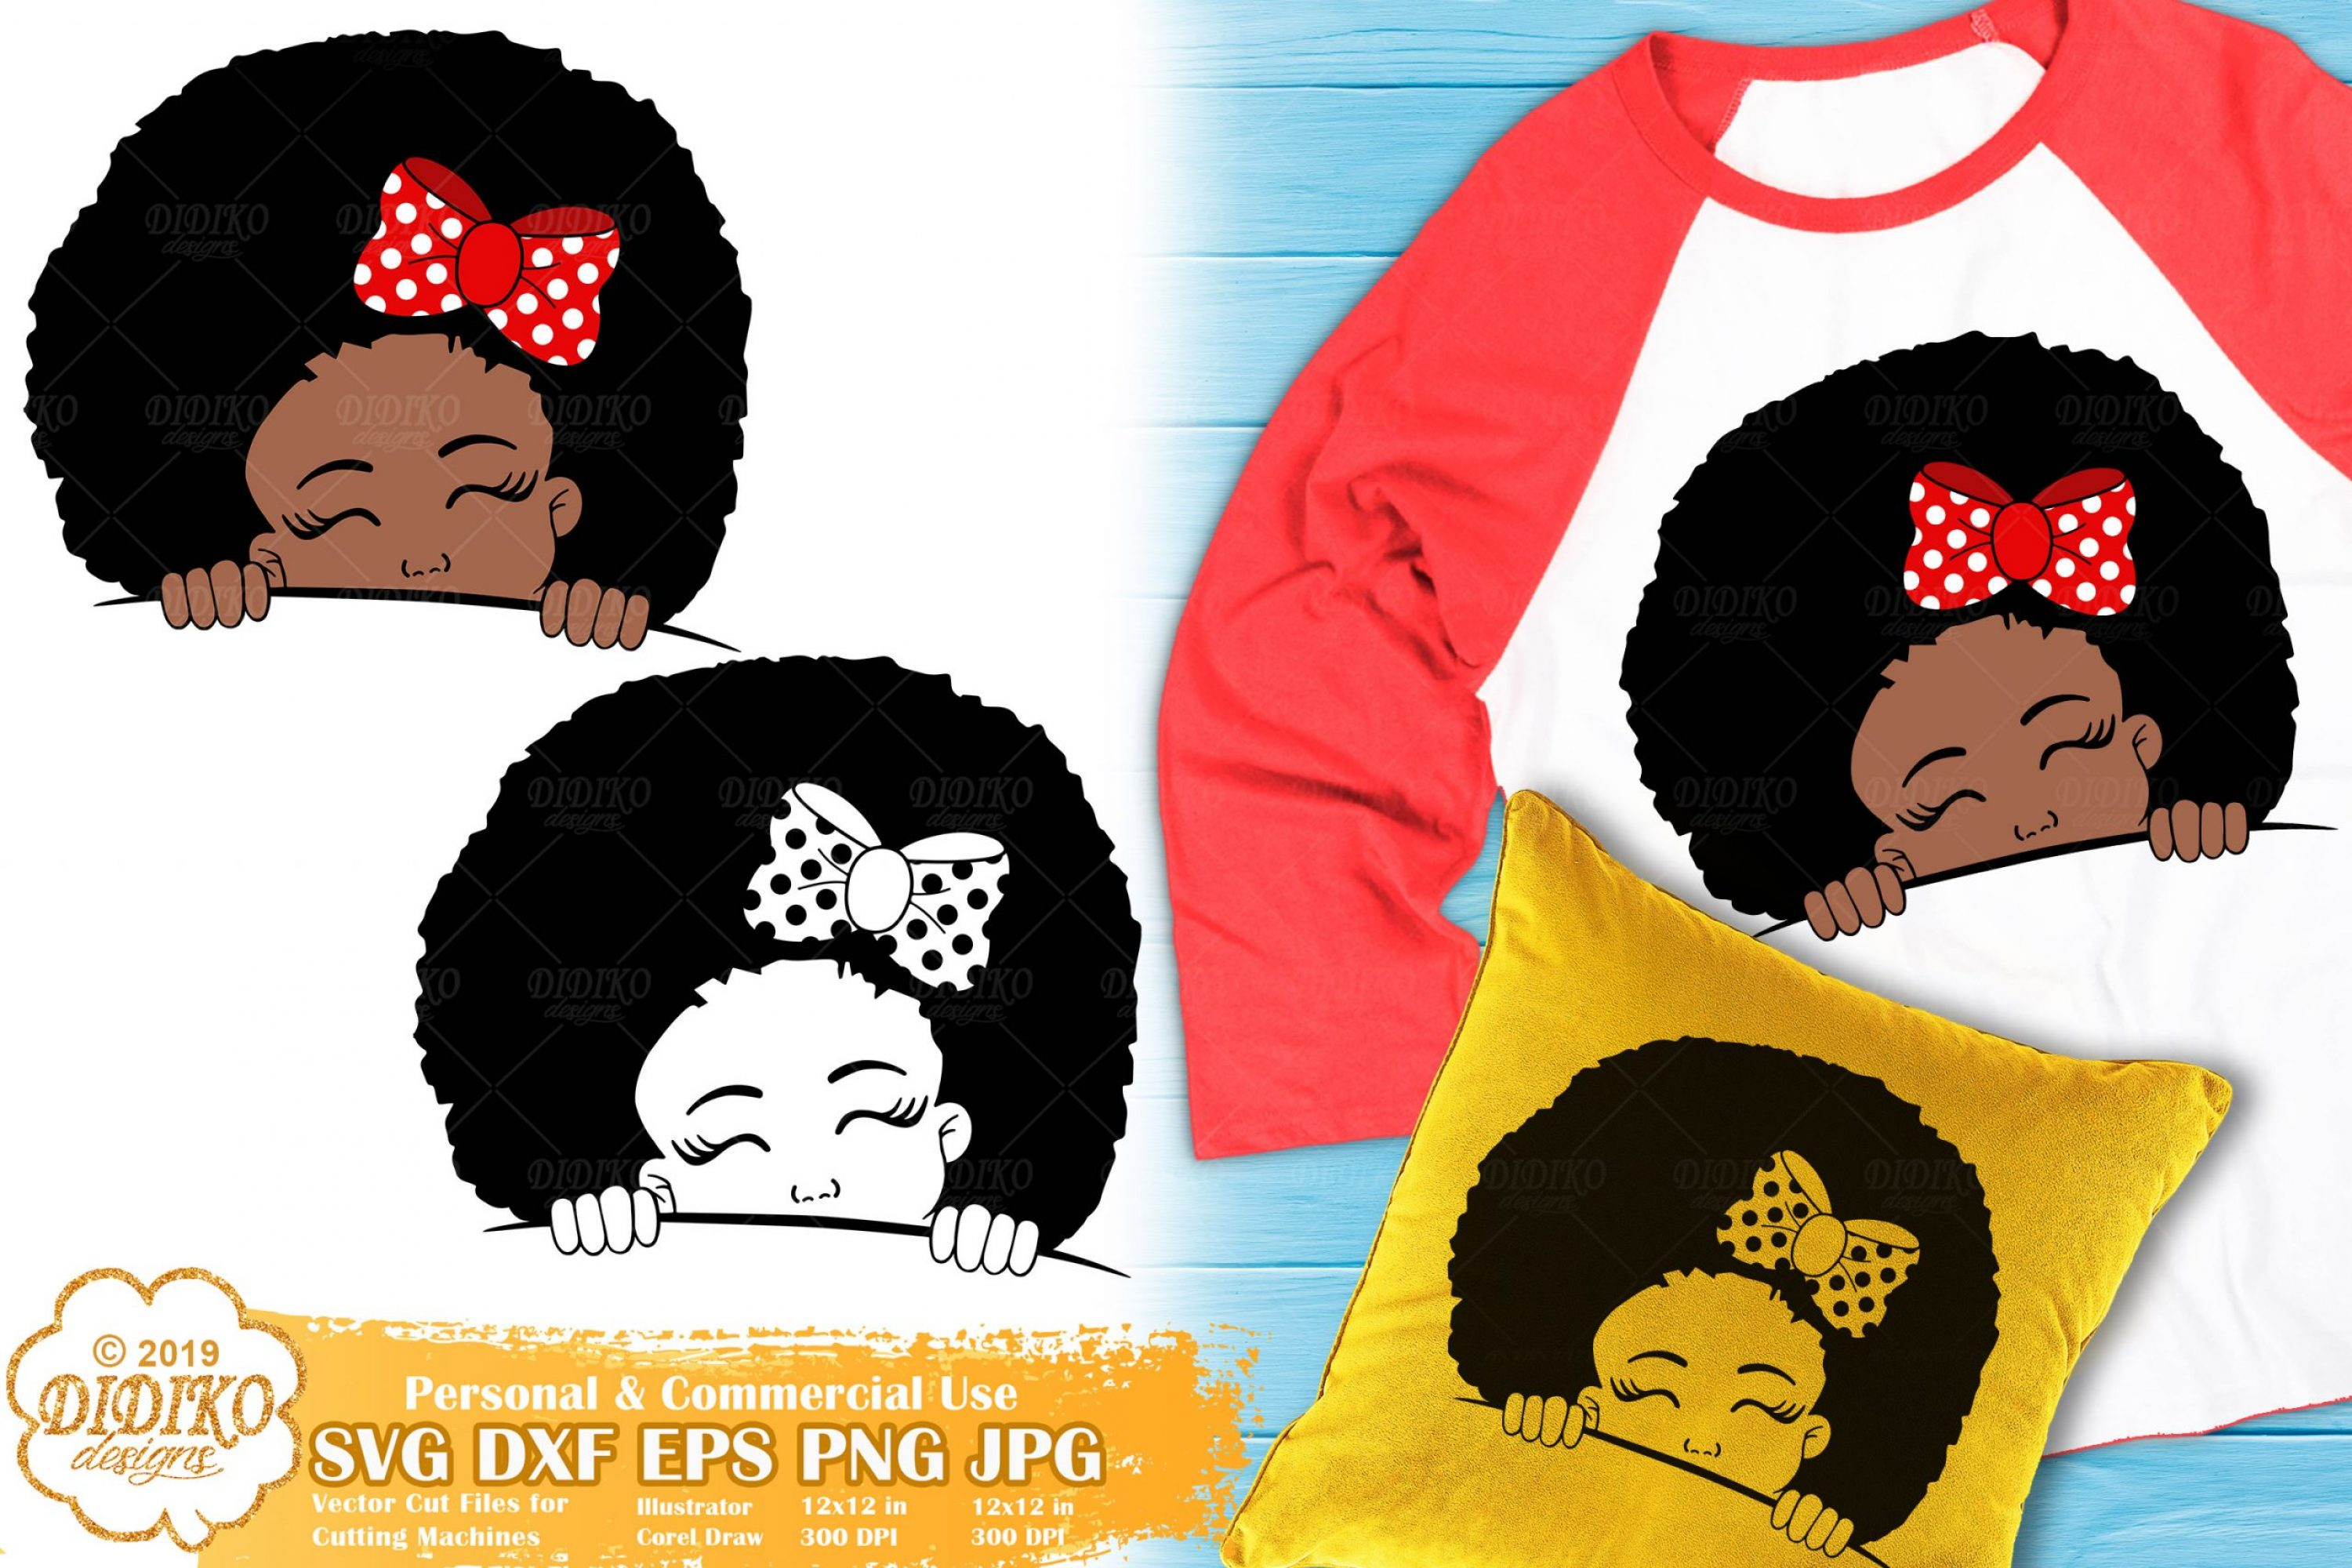 Peek a Boo Girl SVG #7 | Black Girl Svg | Afro Peeking